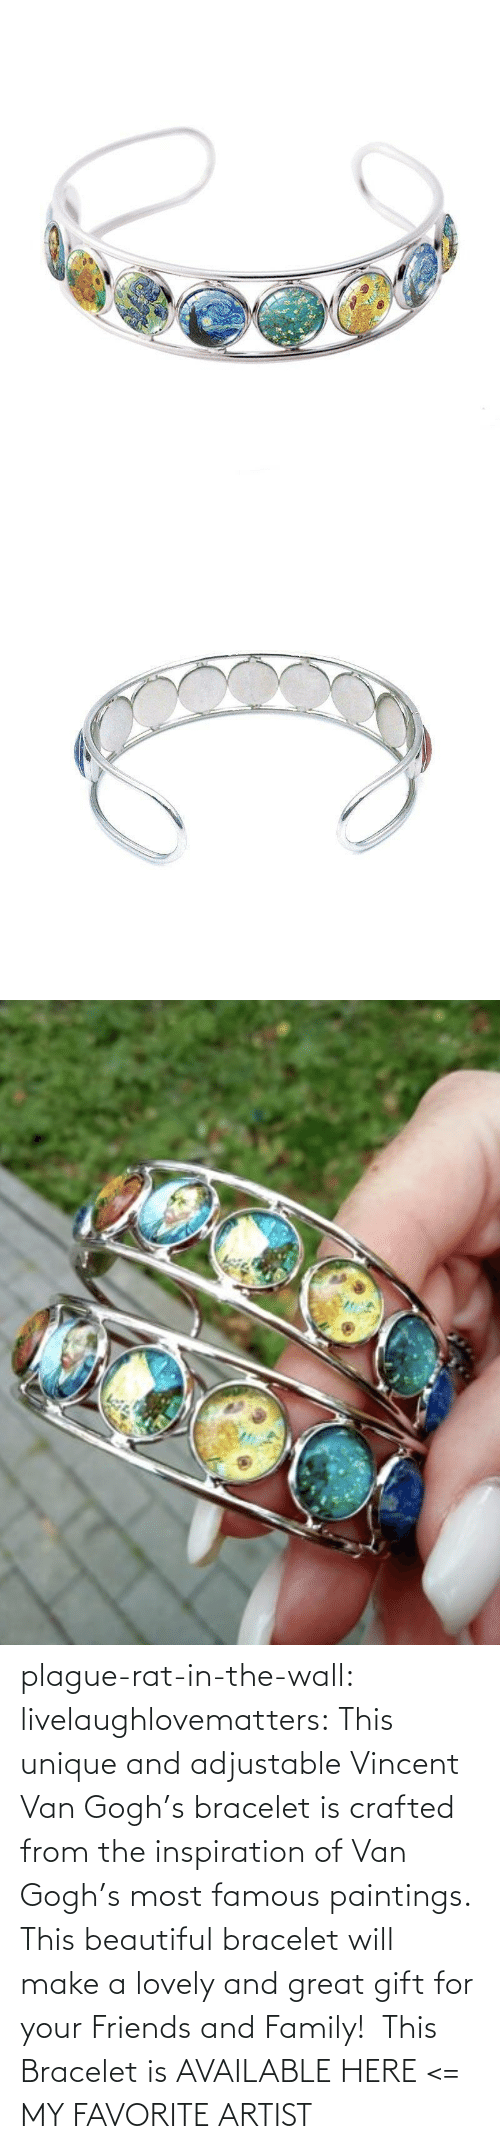 lovely: plague-rat-in-the-wall:  livelaughlovematters: This unique and adjustable Vincent Van Gogh's bracelet is crafted from the inspiration of Van Gogh's most famous paintings. This beautiful bracelet will make a lovely and great gift for your Friends and Family!  This Bracelet is AVAILABLE HERE <=  MY FAVORITE ARTIST